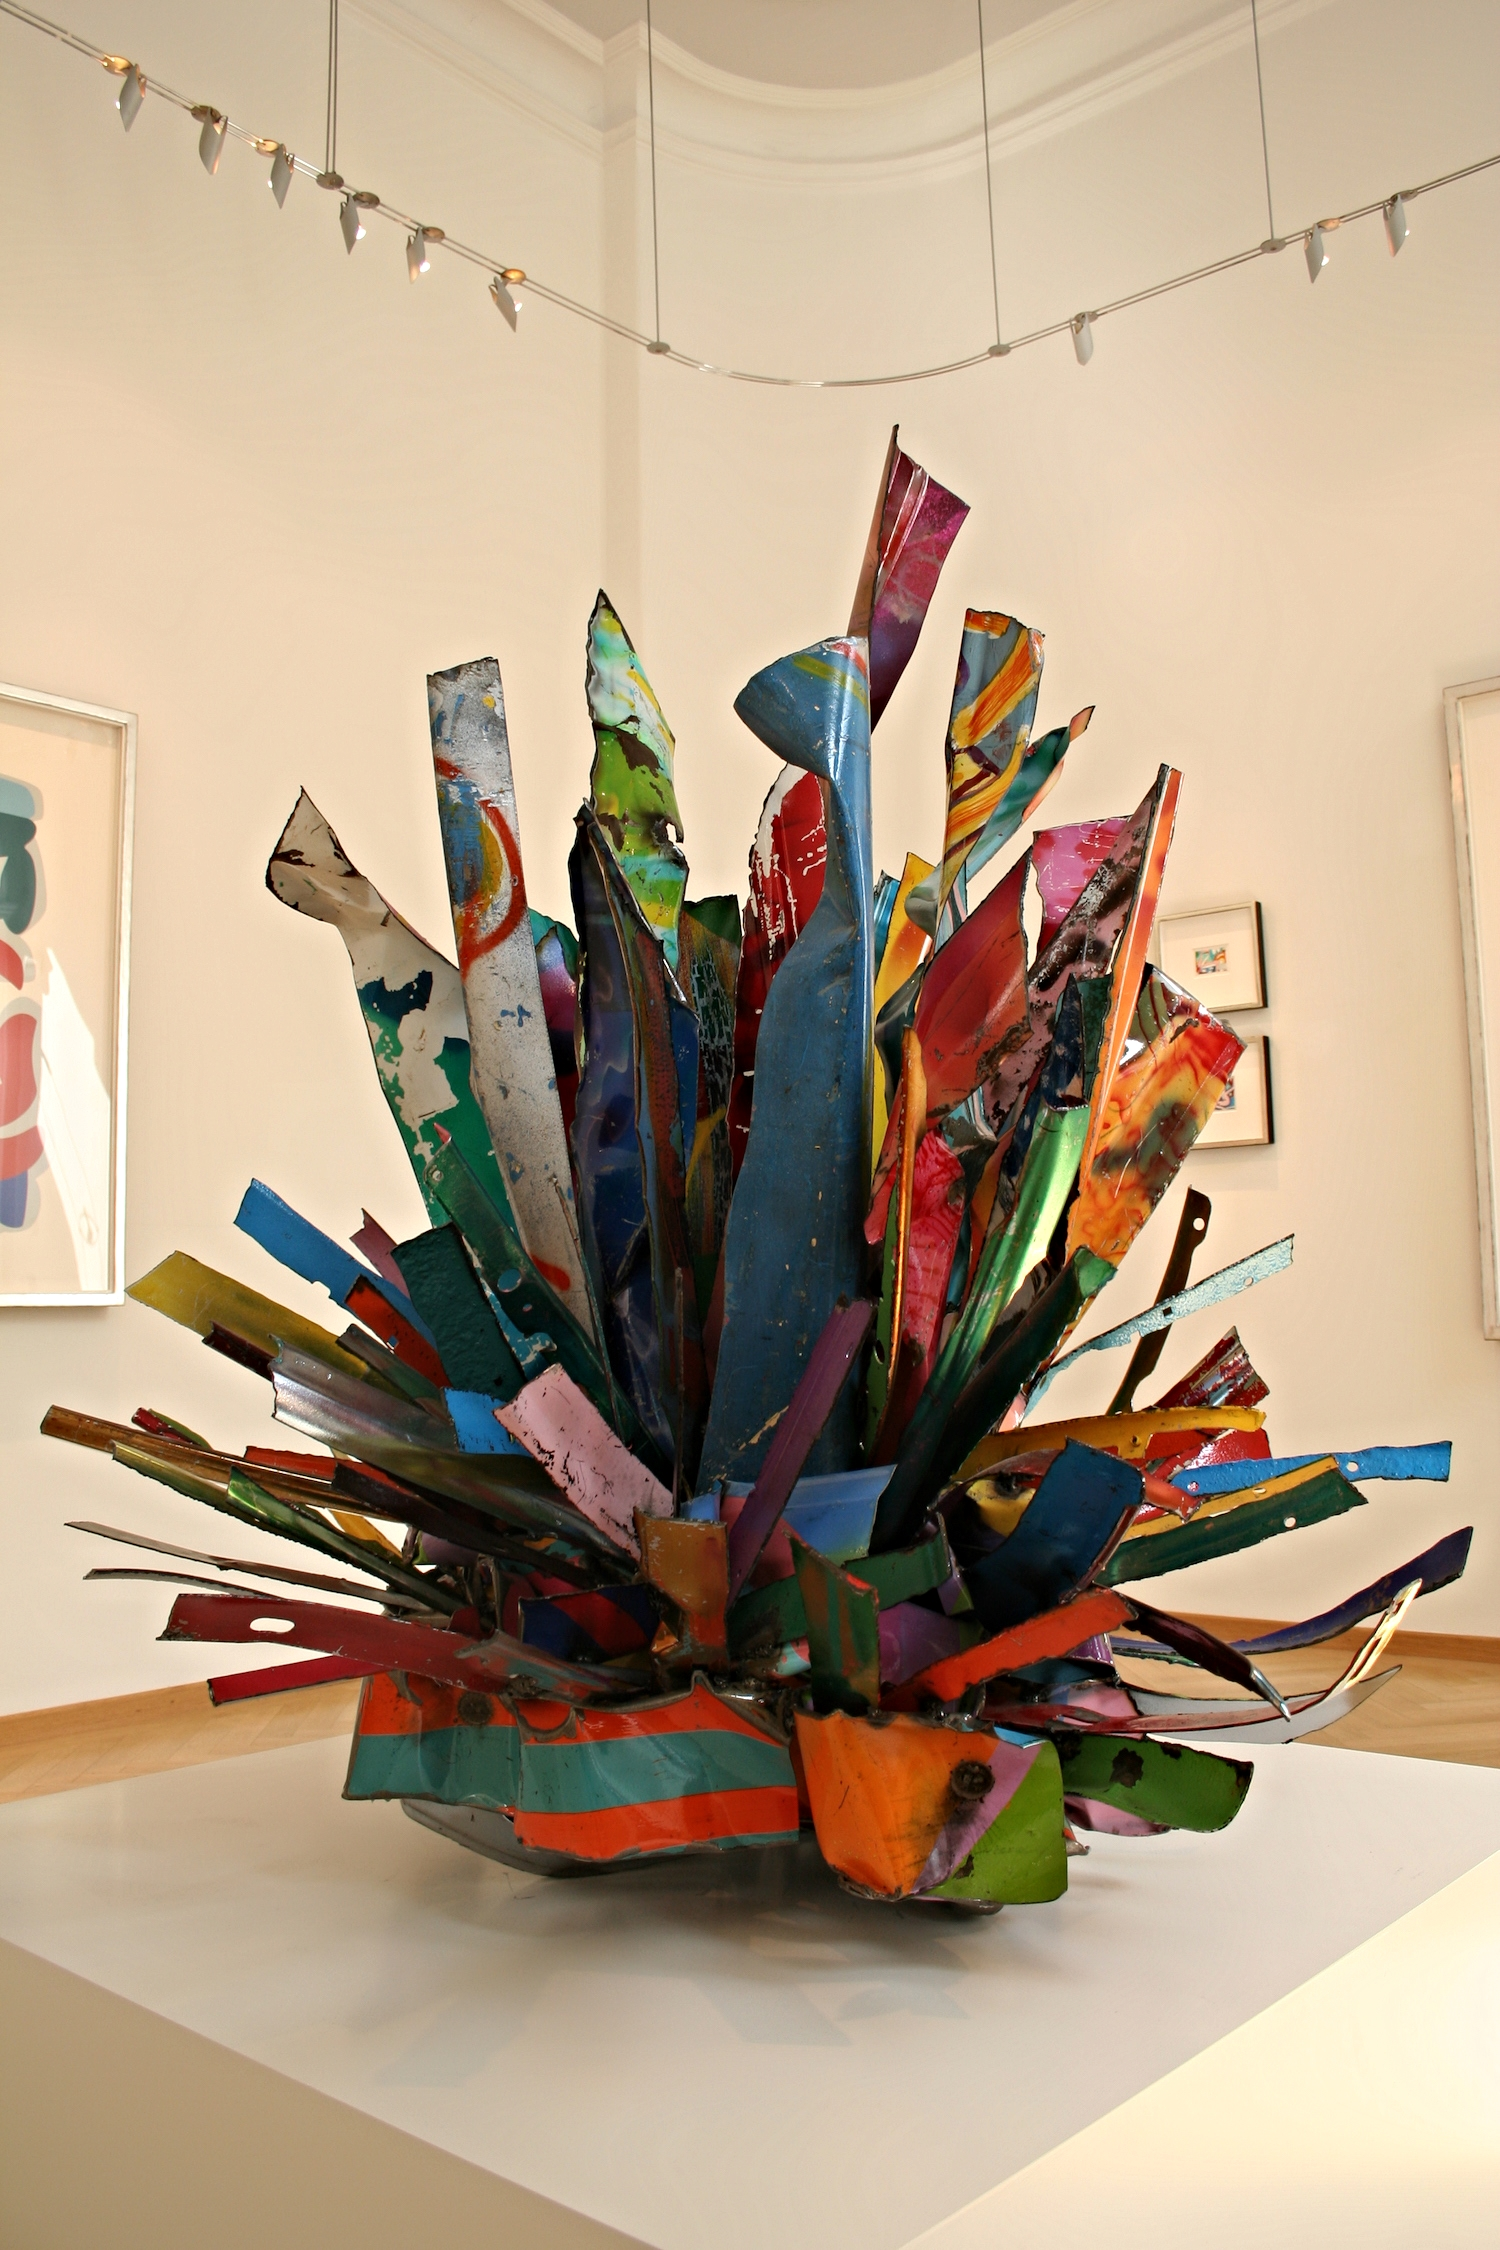 John Chamberlain FOURDOORCOUPE, 2008 Painted and chromed steel 147 x 135 x 135 cm | 57 3/4 x 53 1/4 x 53 1/4 in (sold)